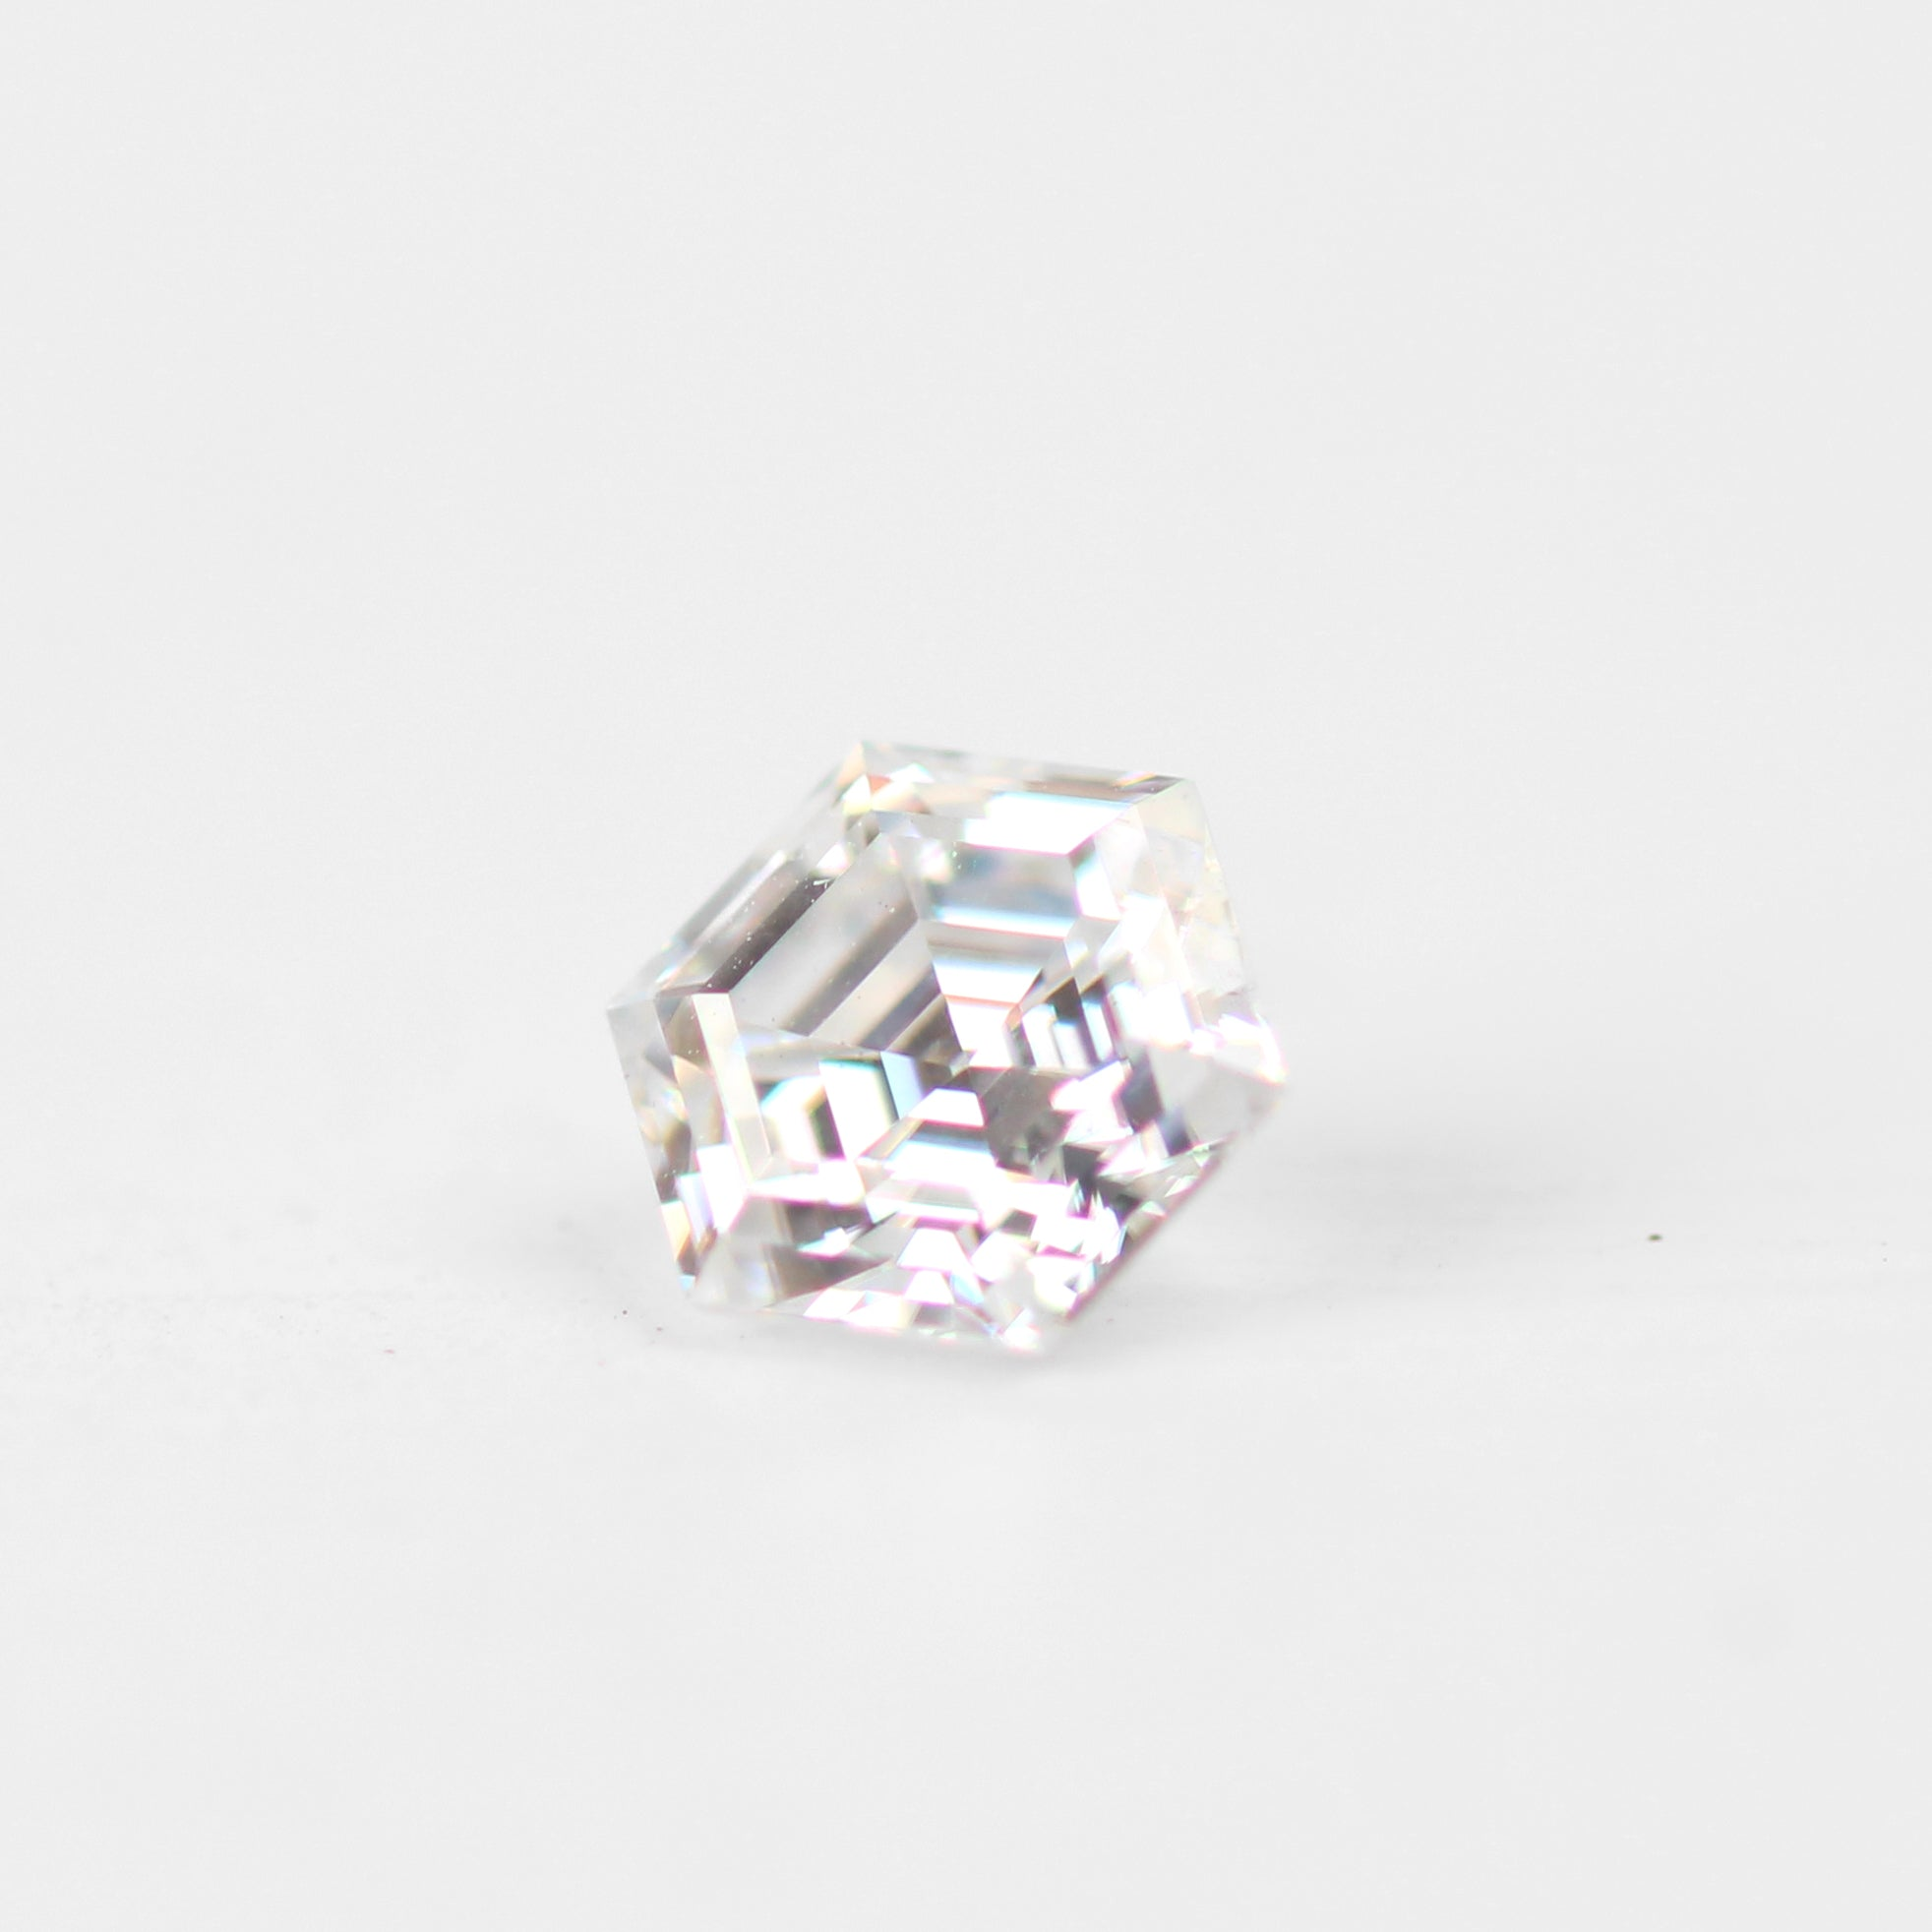 6mm Clear Hexagon Moissanite - Inventory Code MHEX1 - Salt & Pepper Celestial Diamond Engagement Rings and Wedding Bands  by Midwinter Co.